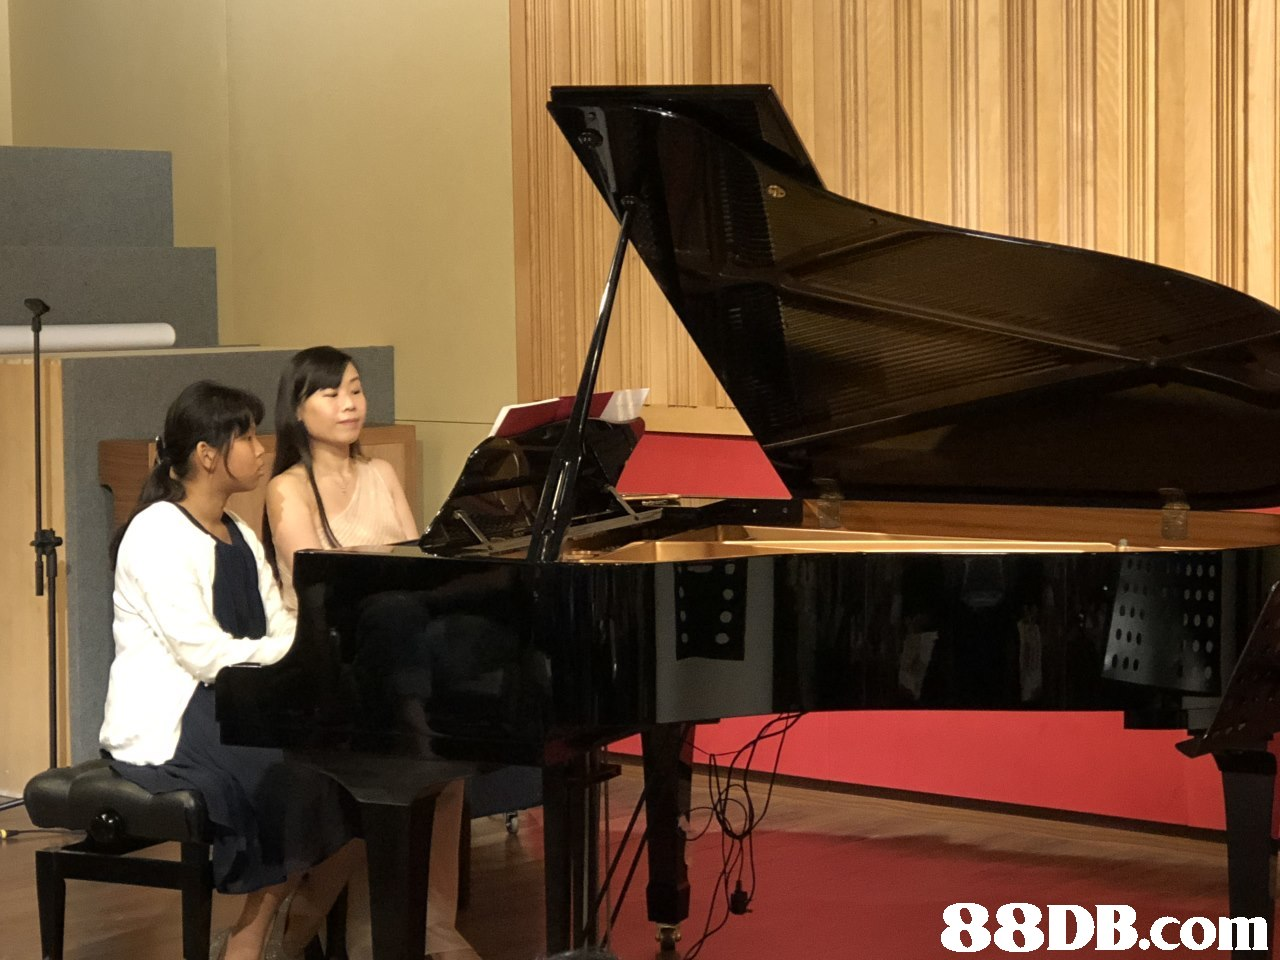 piano,pianist,keyboard,musical instrument,technology